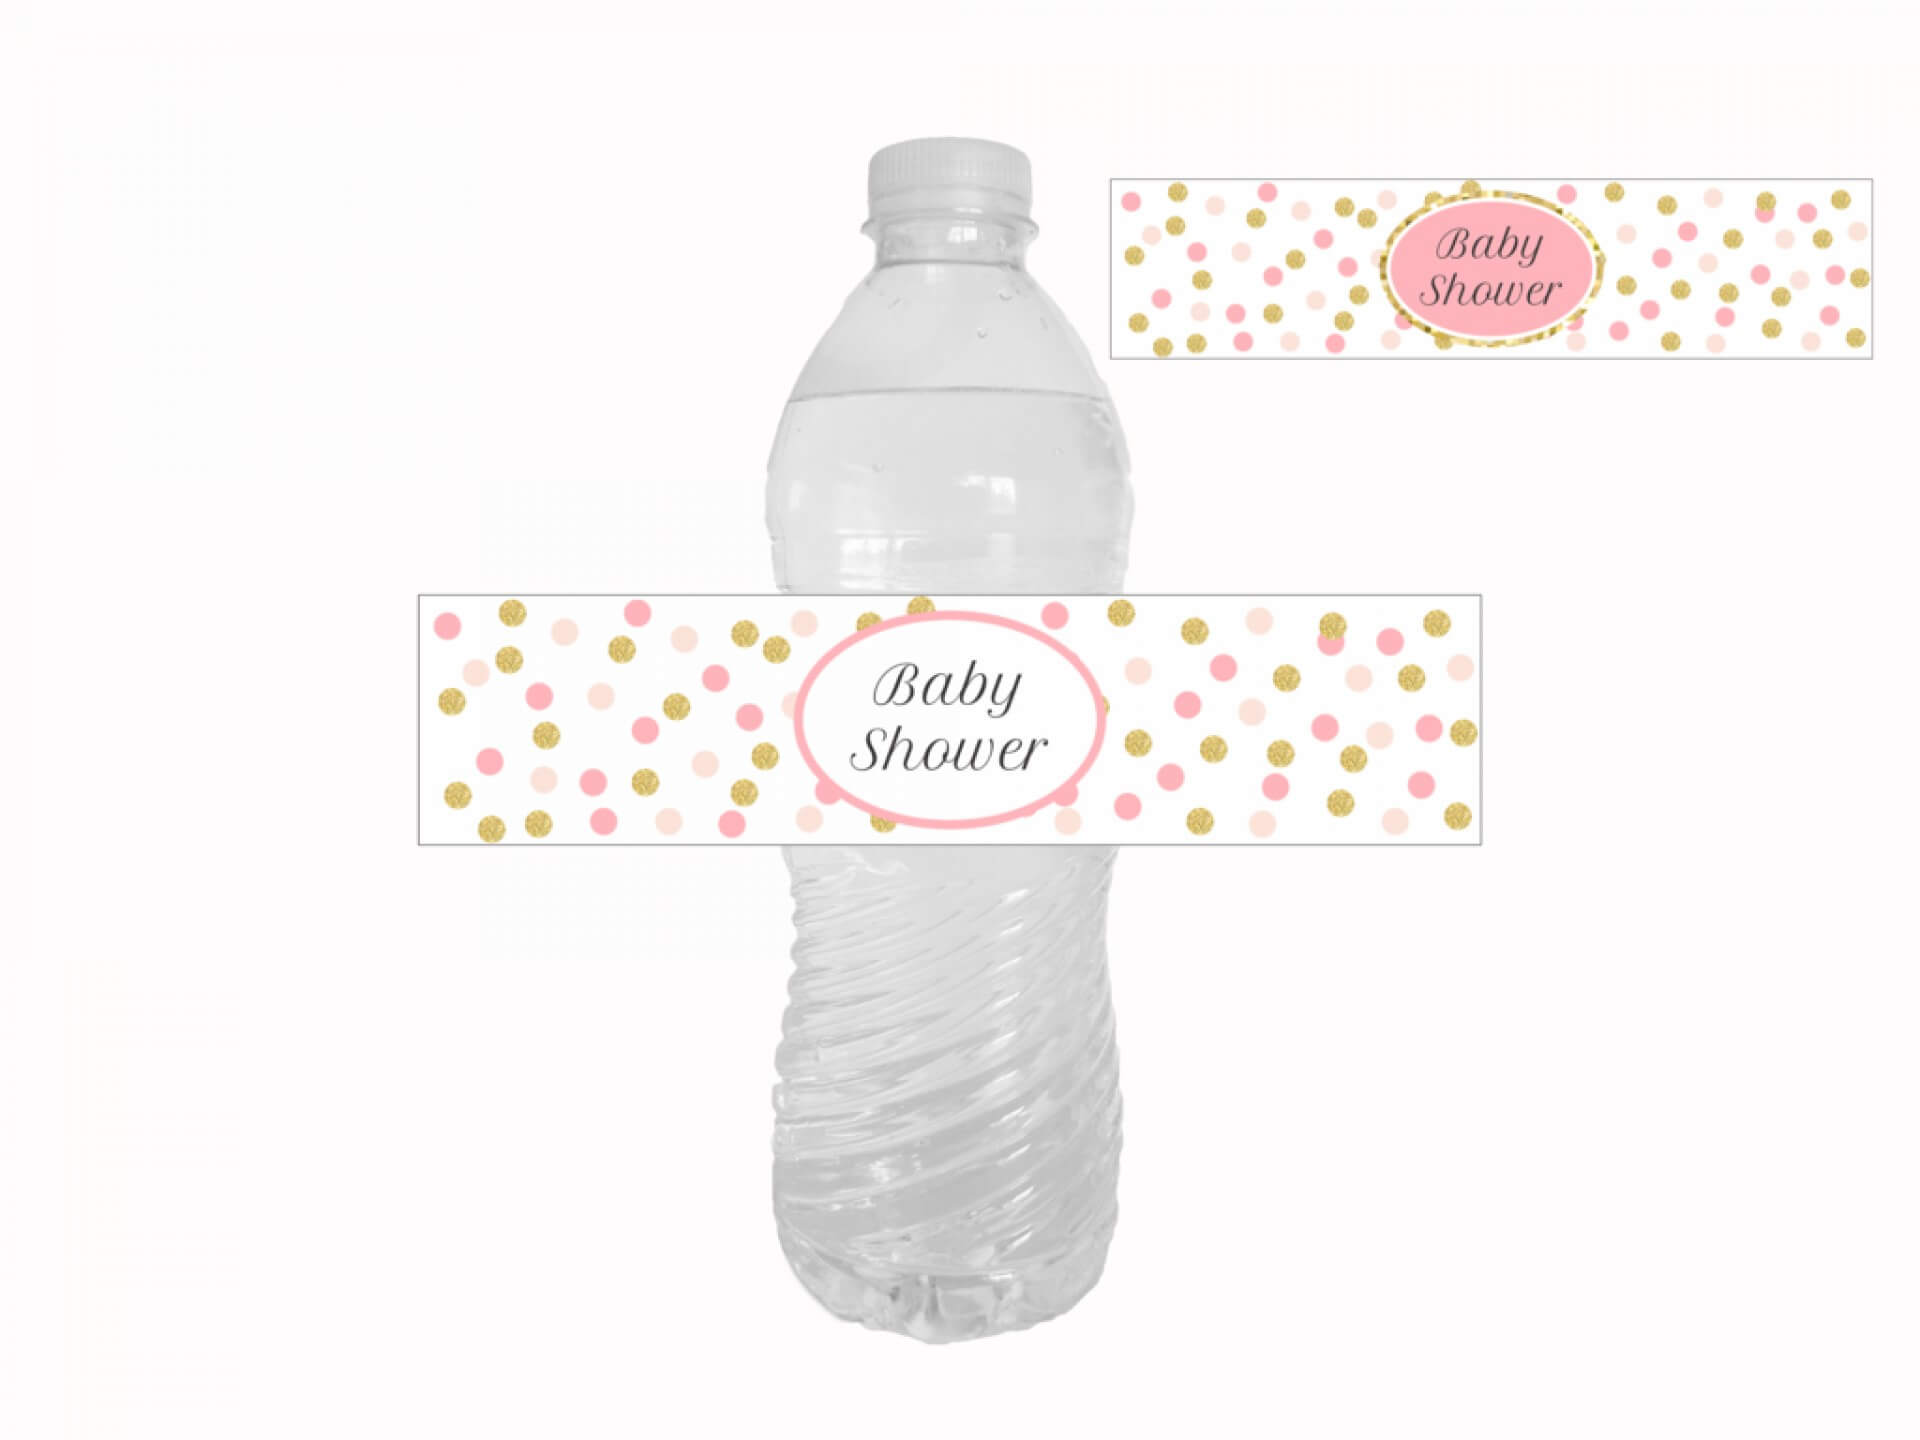 009 Water Bottle Labels Template Free Baby Shower Amazing In Baby Shower Bottle Labels Template